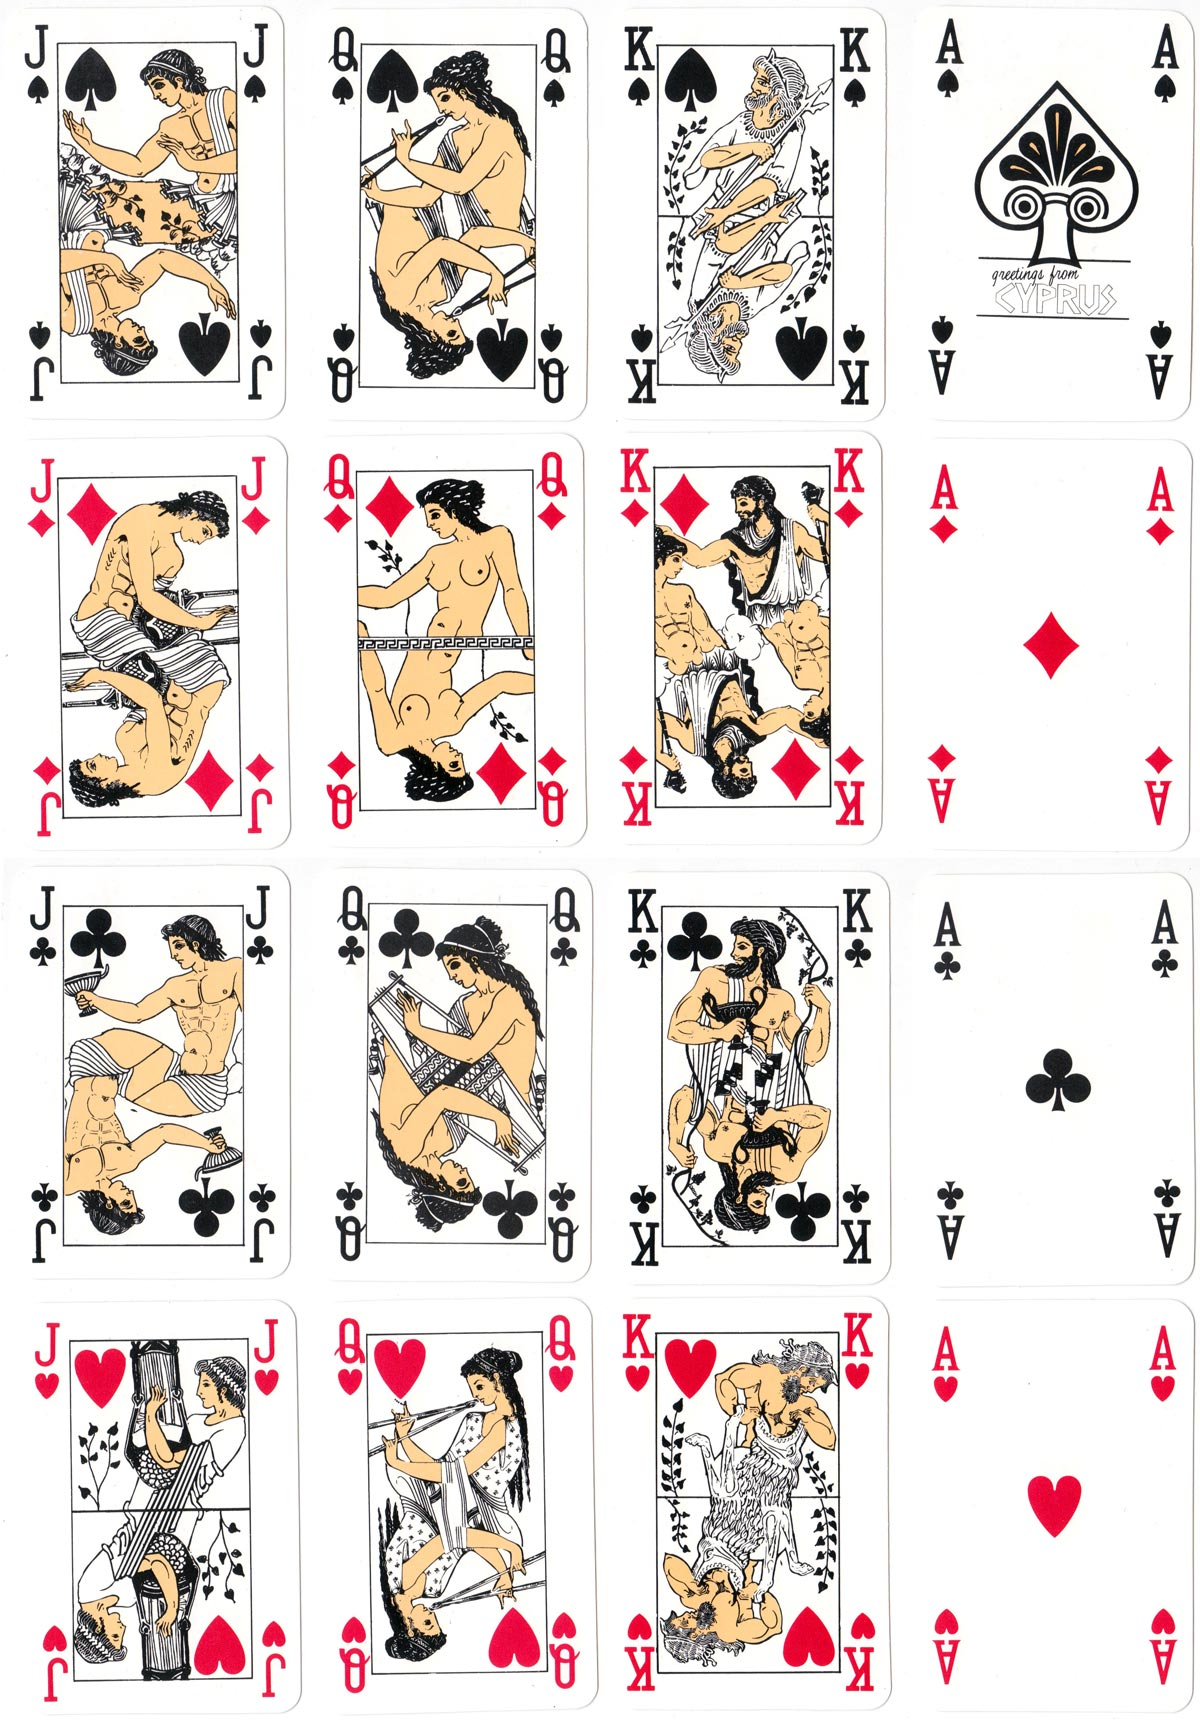 Cyprus souvenir playing cards